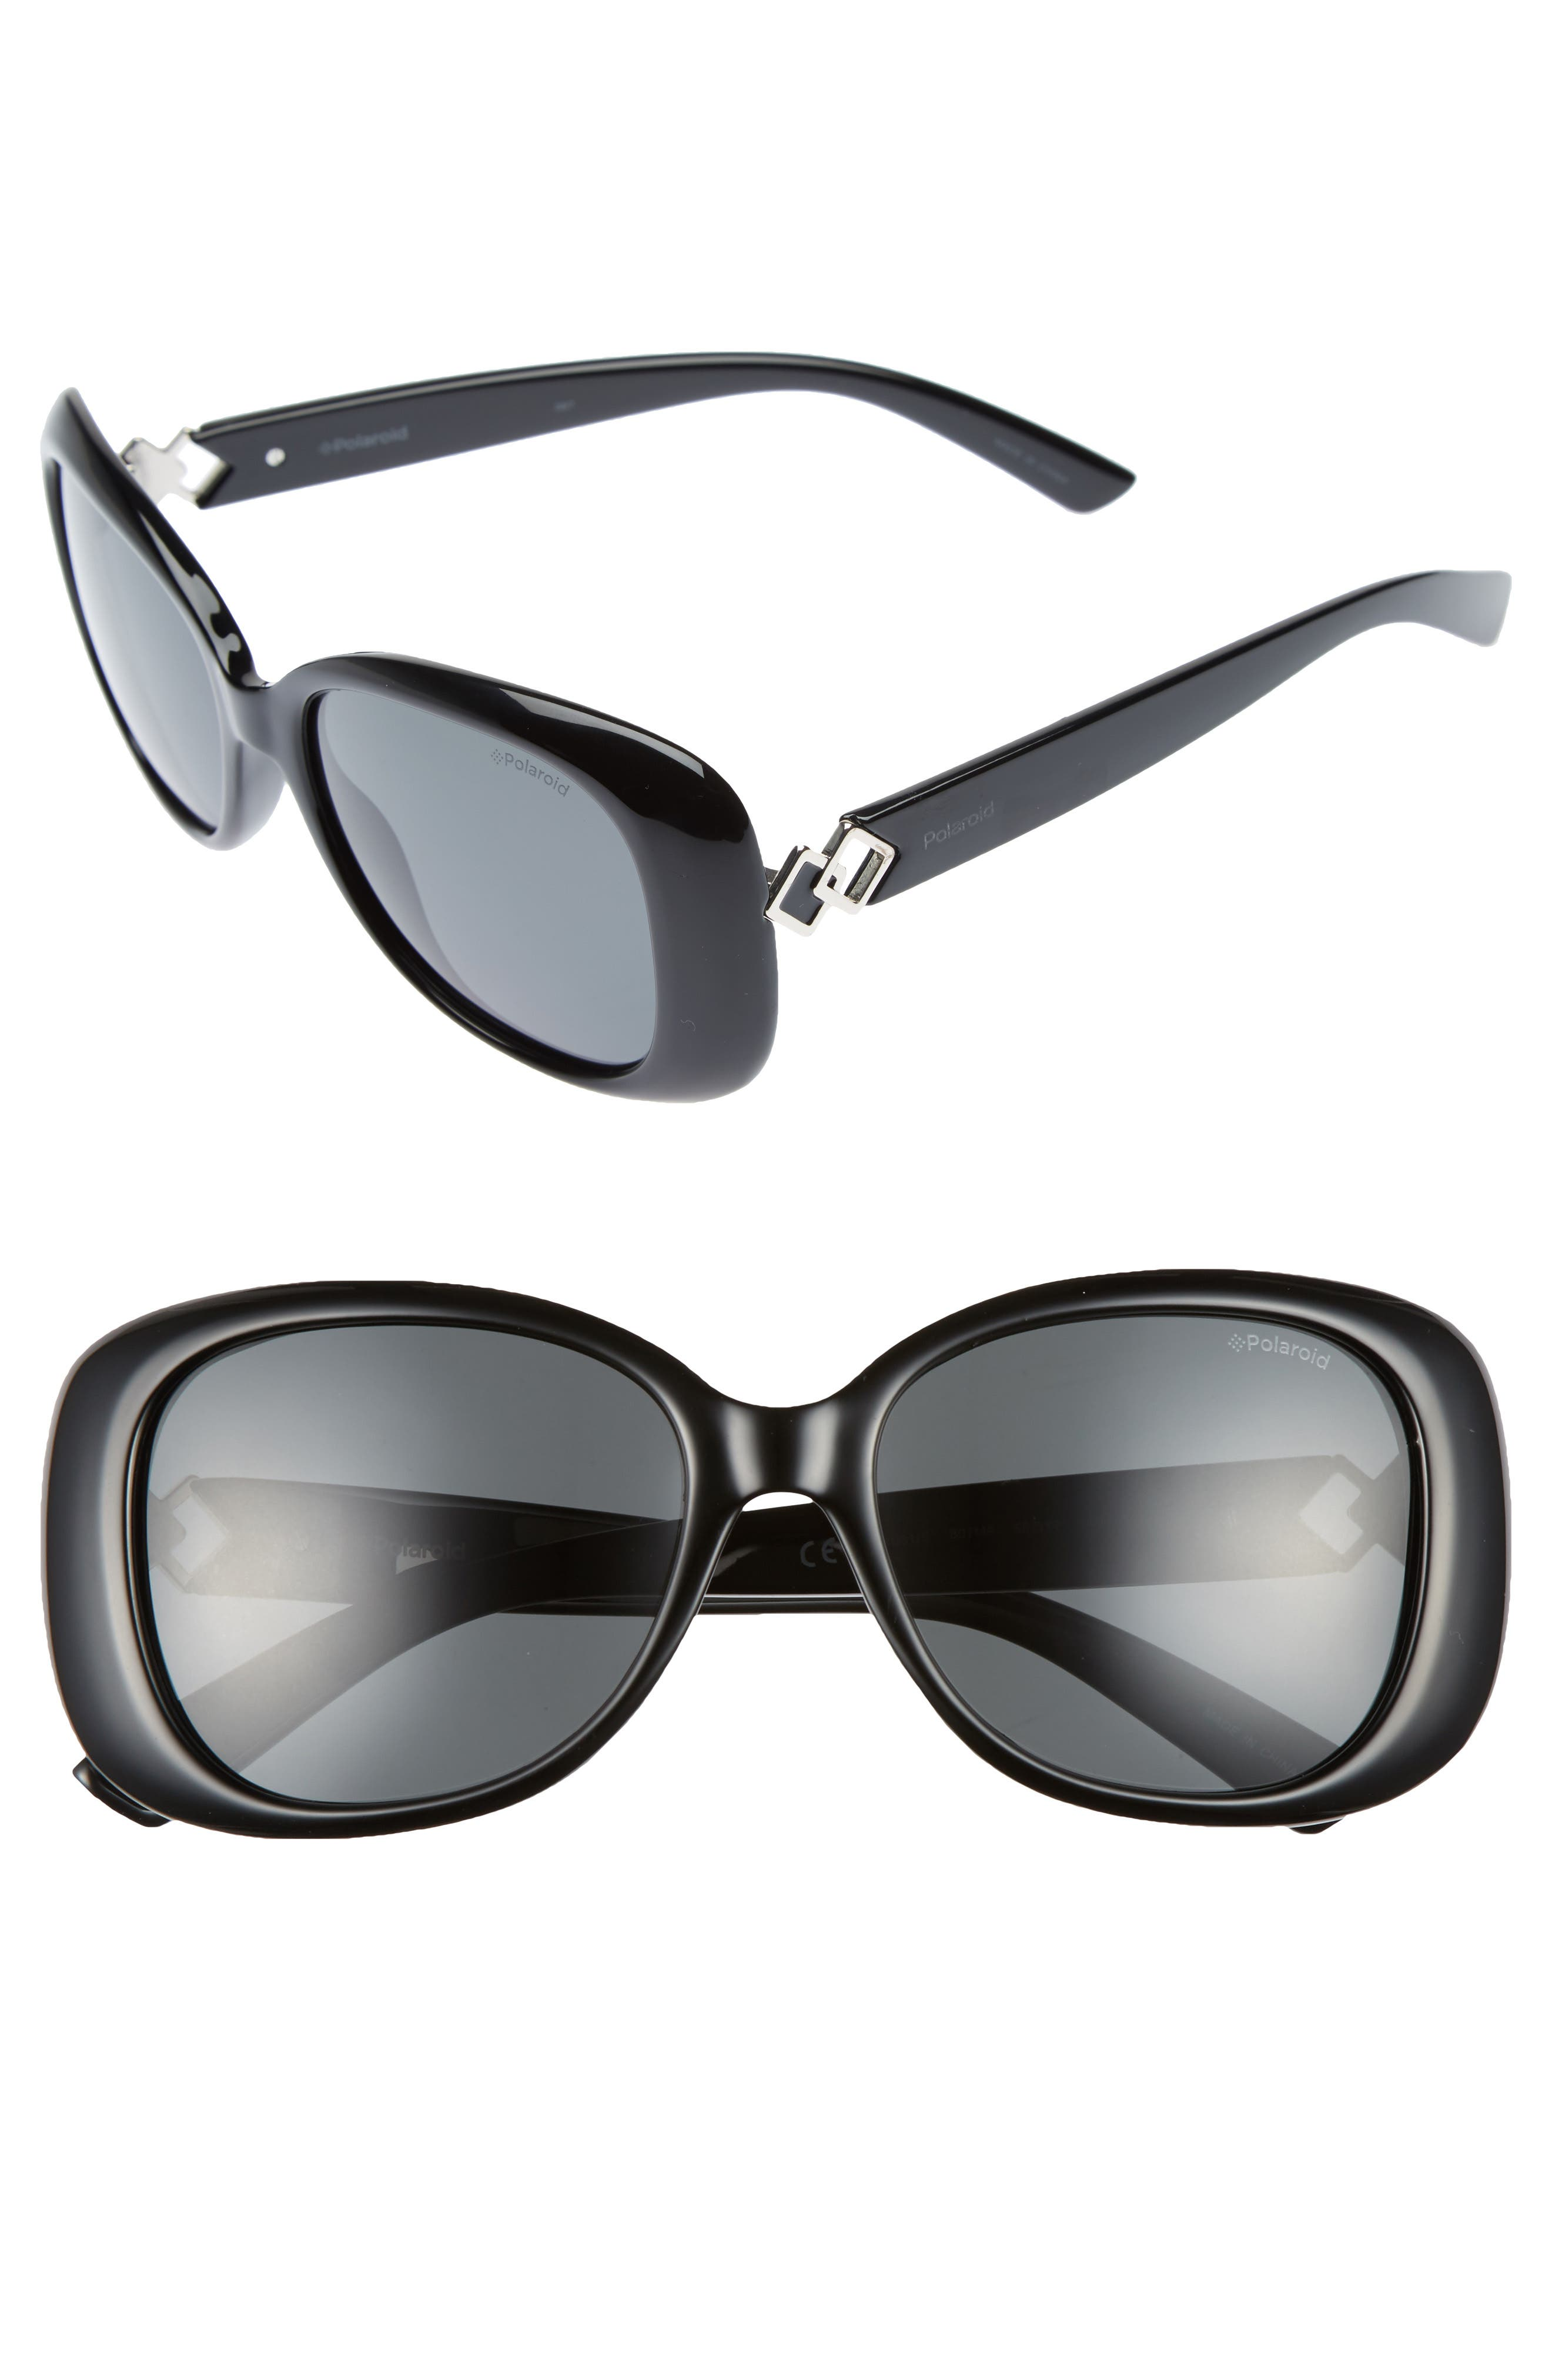 55mm Polarized Butterfly Sunglasses,                             Main thumbnail 1, color,                             001